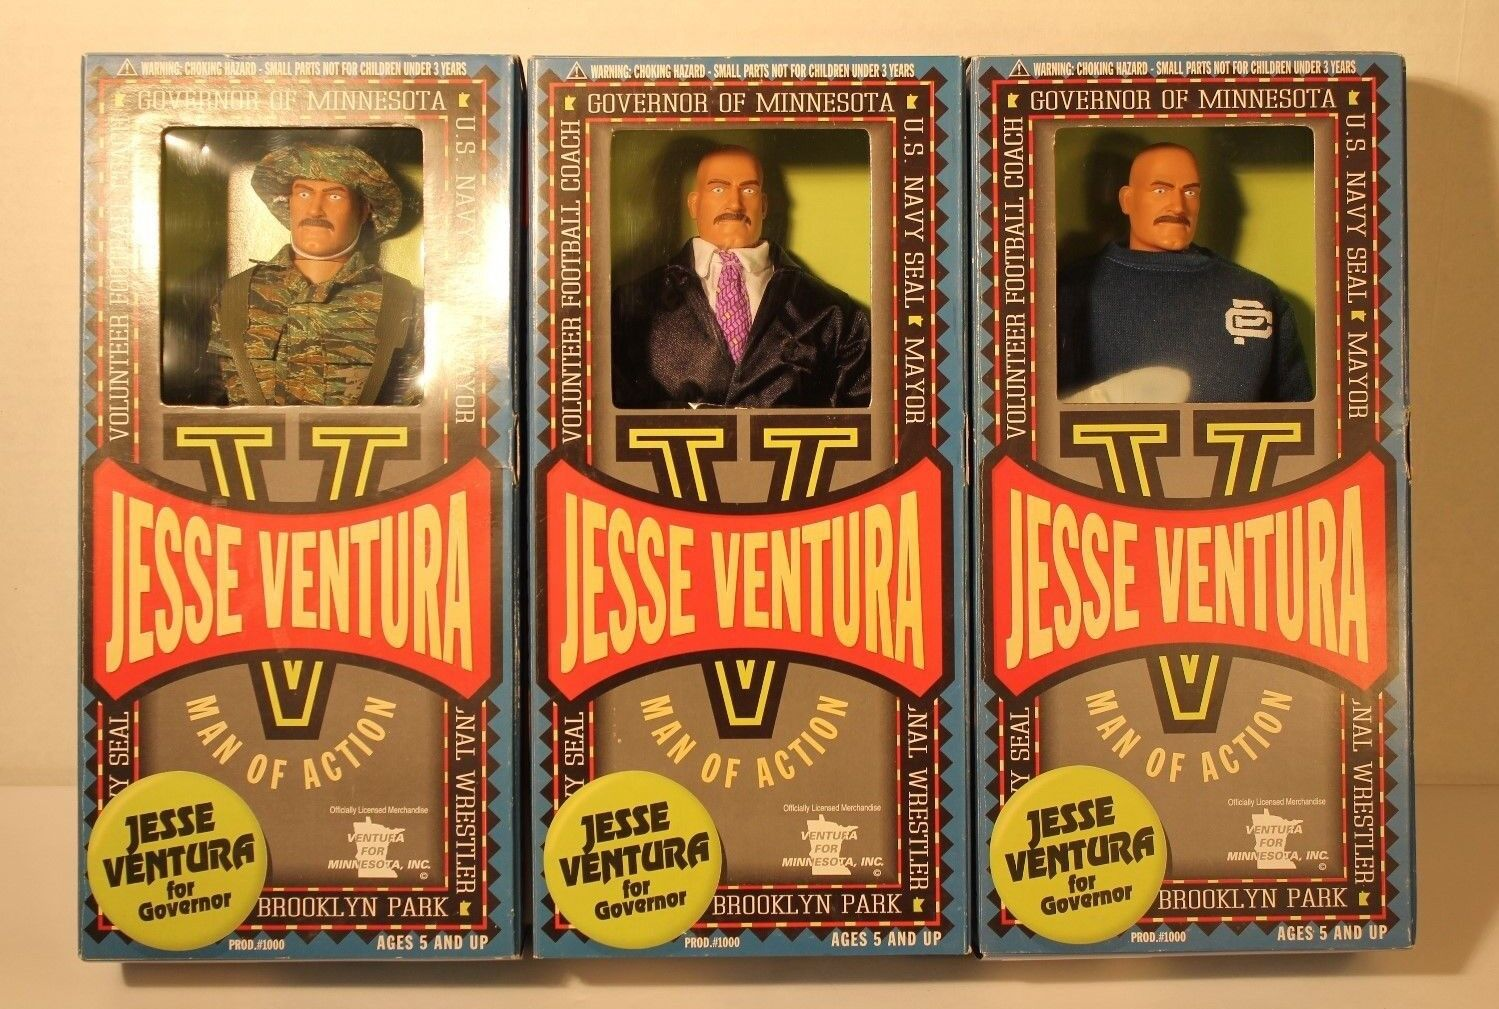 Jesse Ventura Action Figure Dolls Full set of 3 (HKYC55-611) NEW 1999